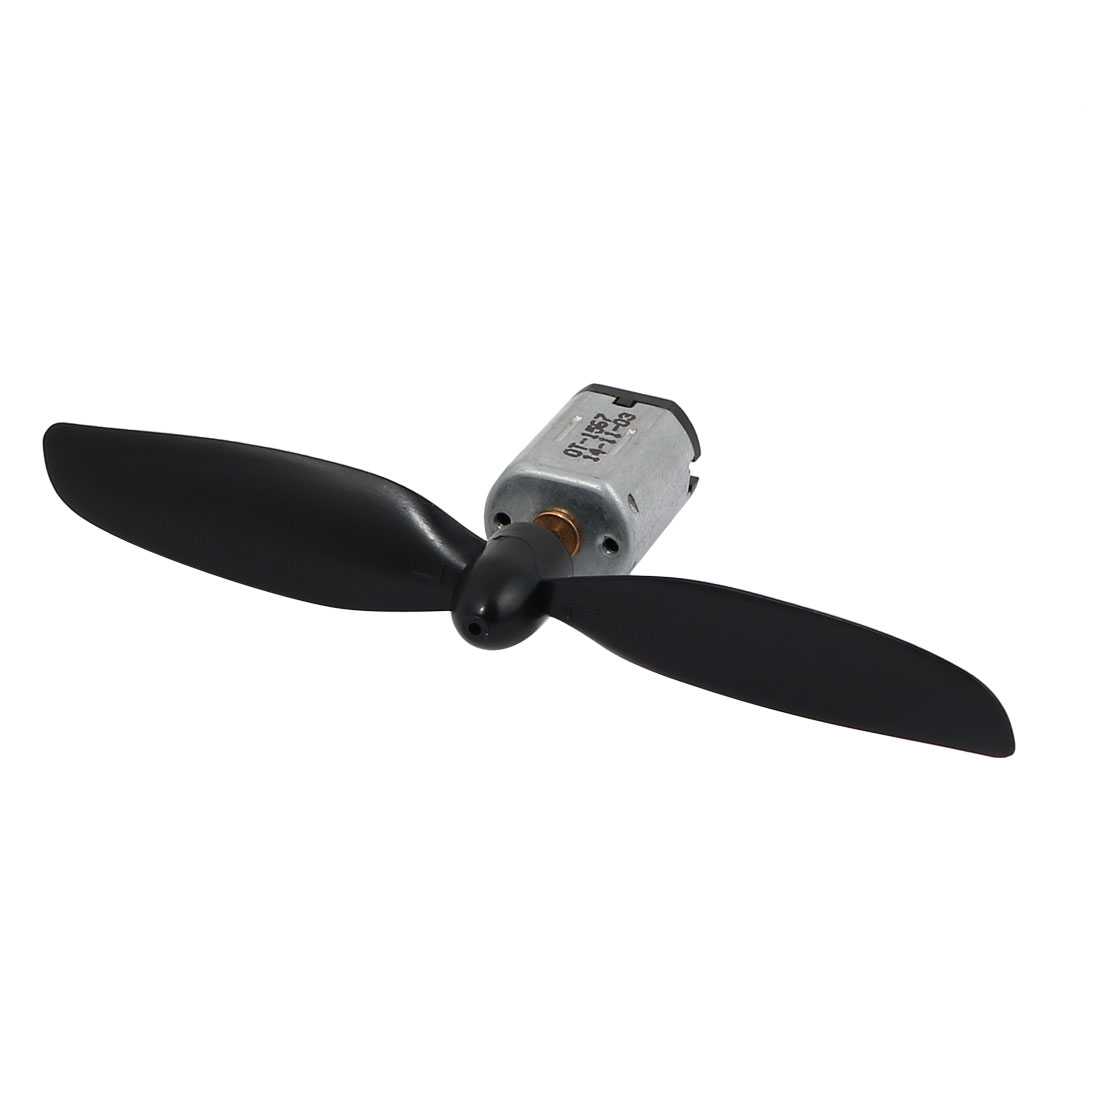 DC 4.5V 30000RPM N20 High Speed Strong Magnetic Motor w Helicopter CCW Propeller